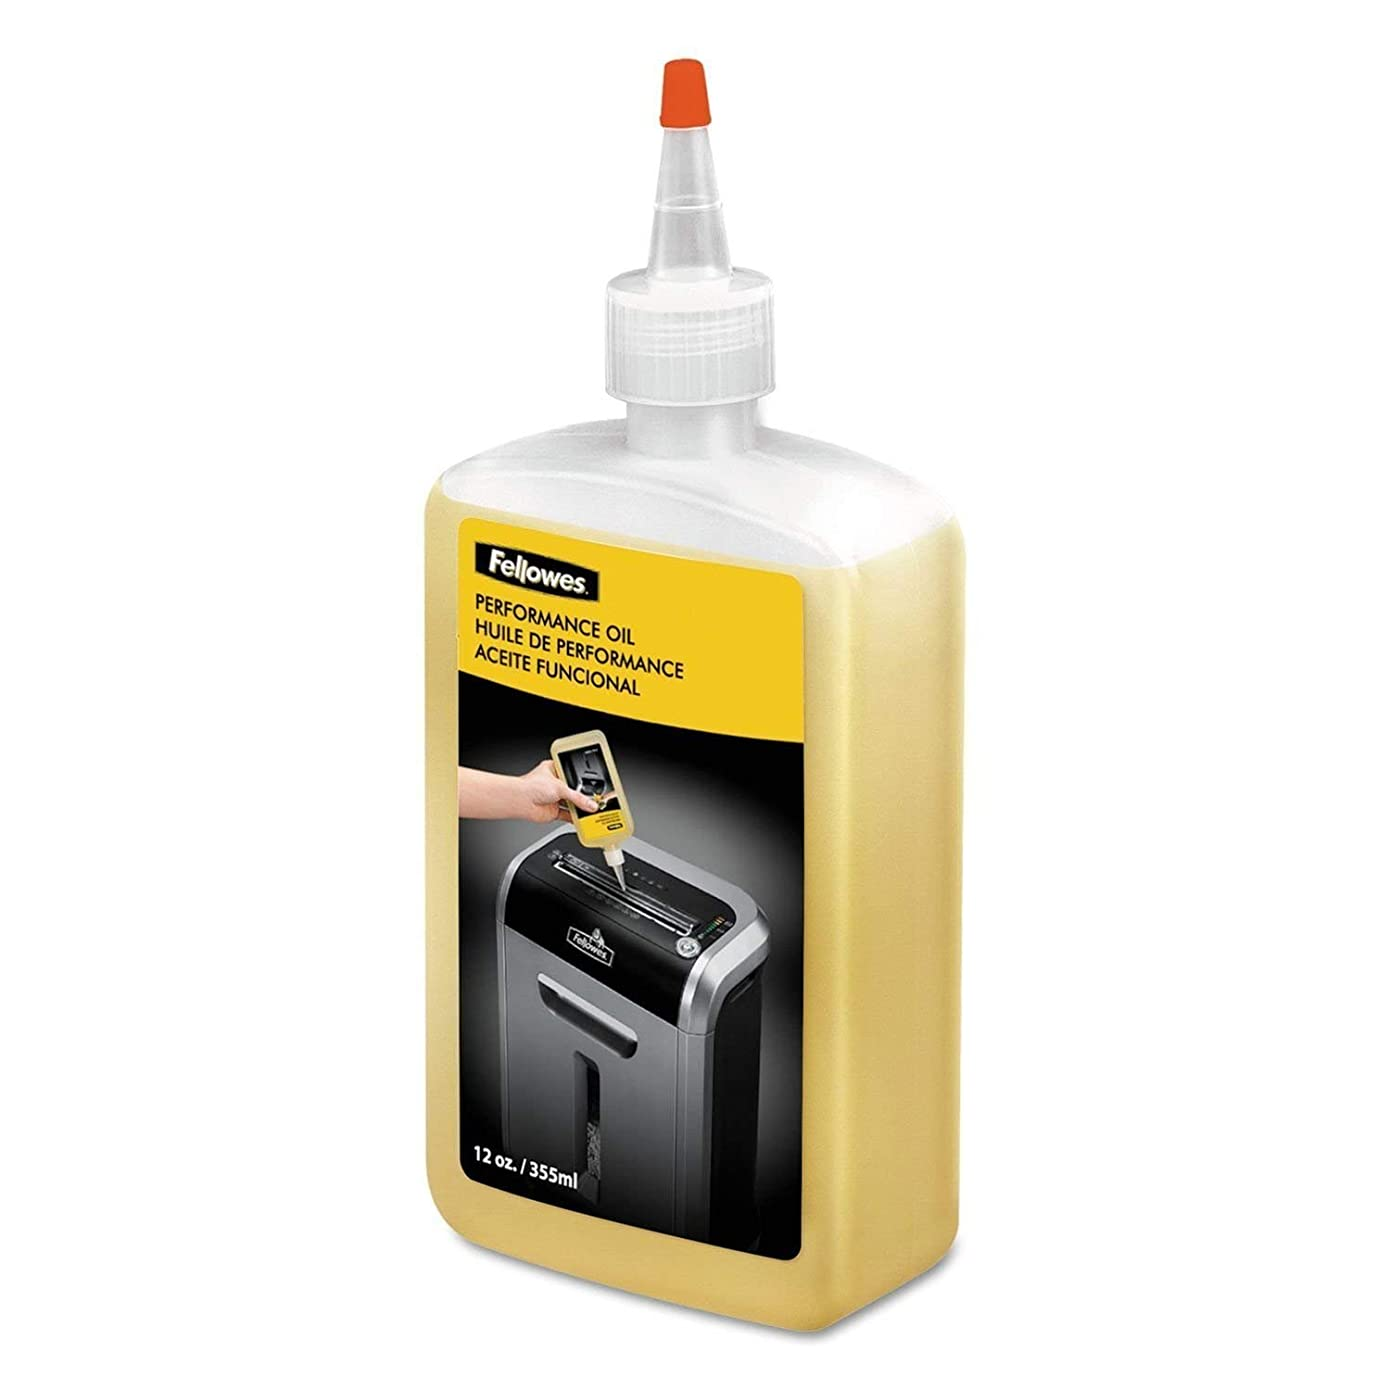 処理するタウポ湖ペフ(6-Pack) - 6 X Fellowes Shredder Oil, 350ml Bottle with Extension Nozzle (35250)